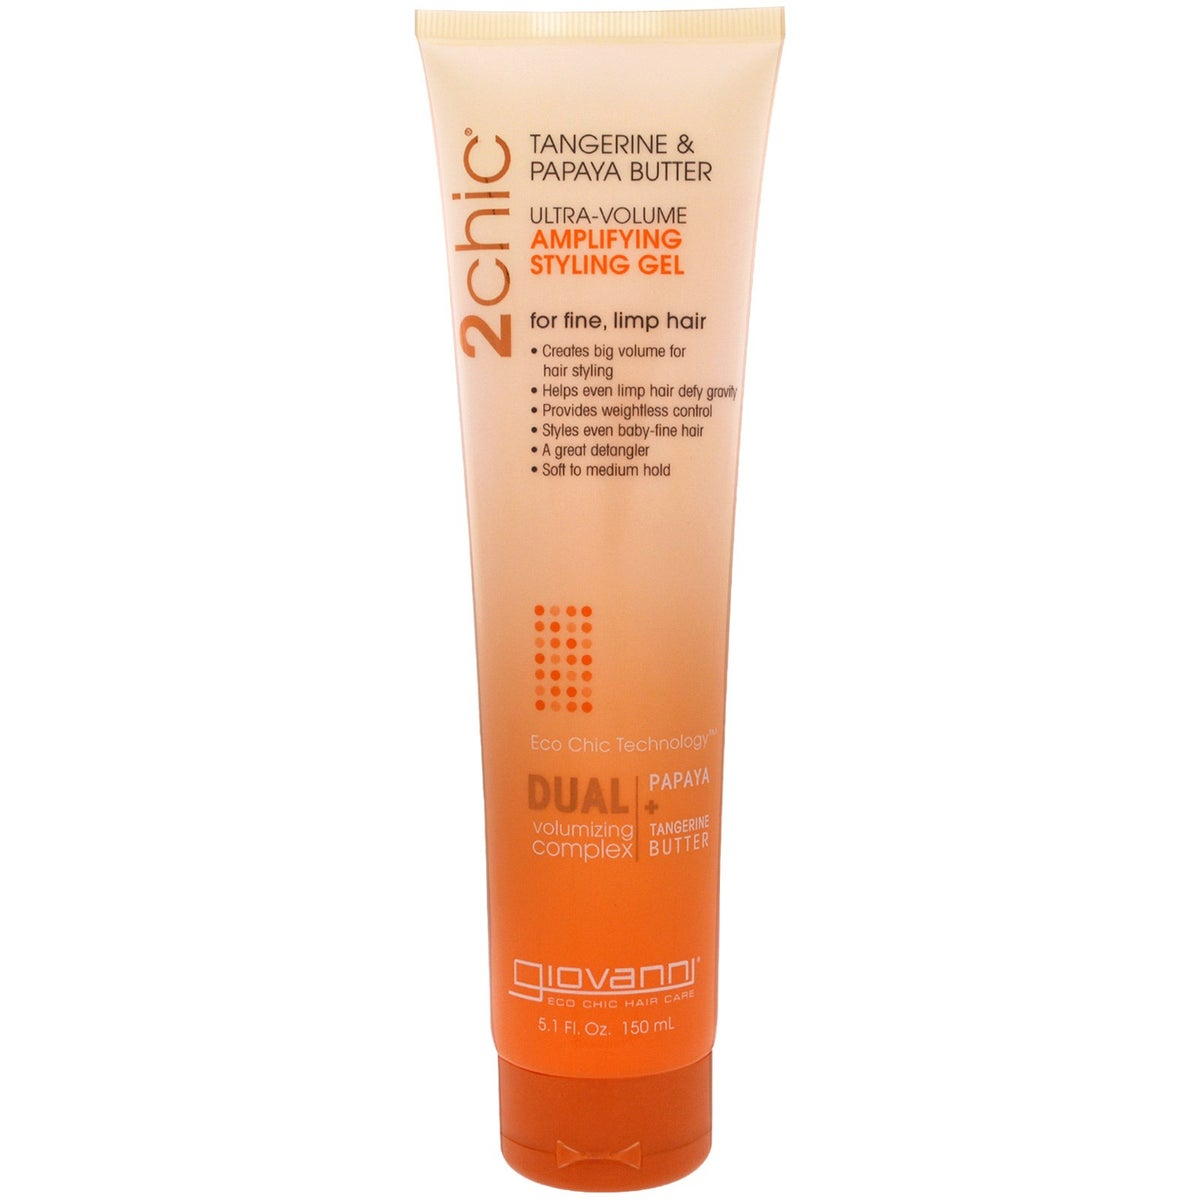 Image of Giovanni 2chic® Ultra-Volume™ Amplifying Styling Gel | 150ml